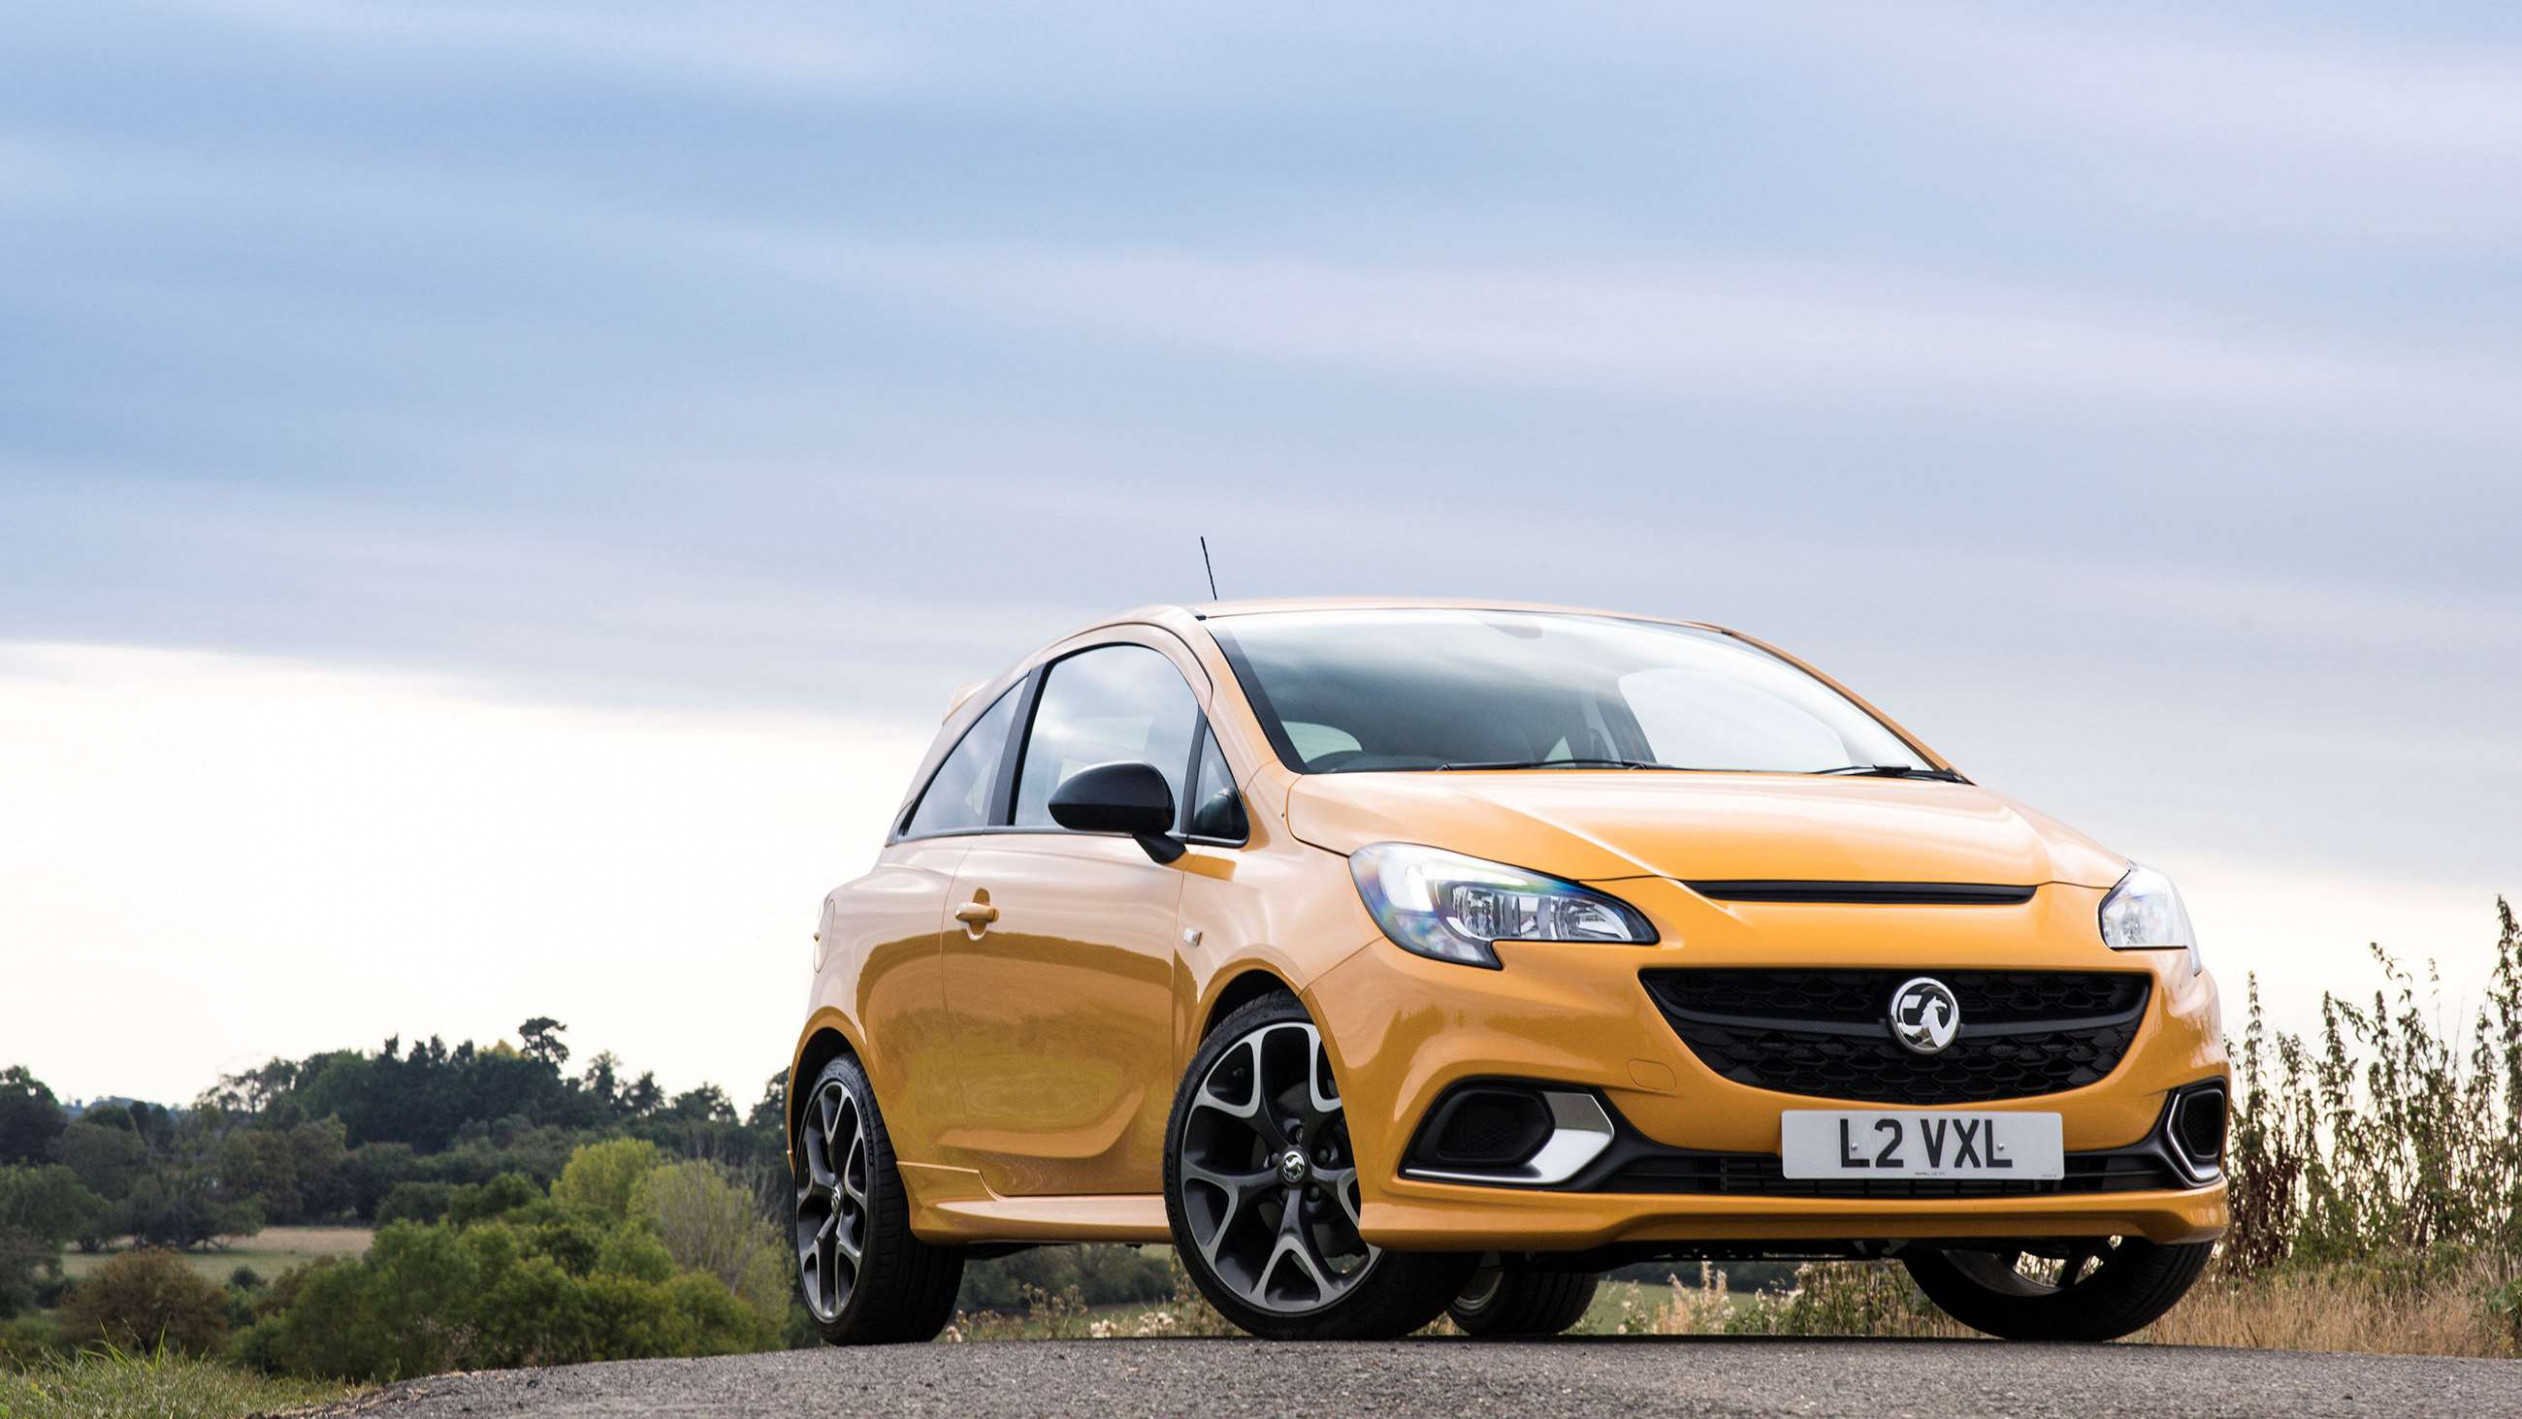 Performance and New Engine 2022 Vauxhall Corsa VXR